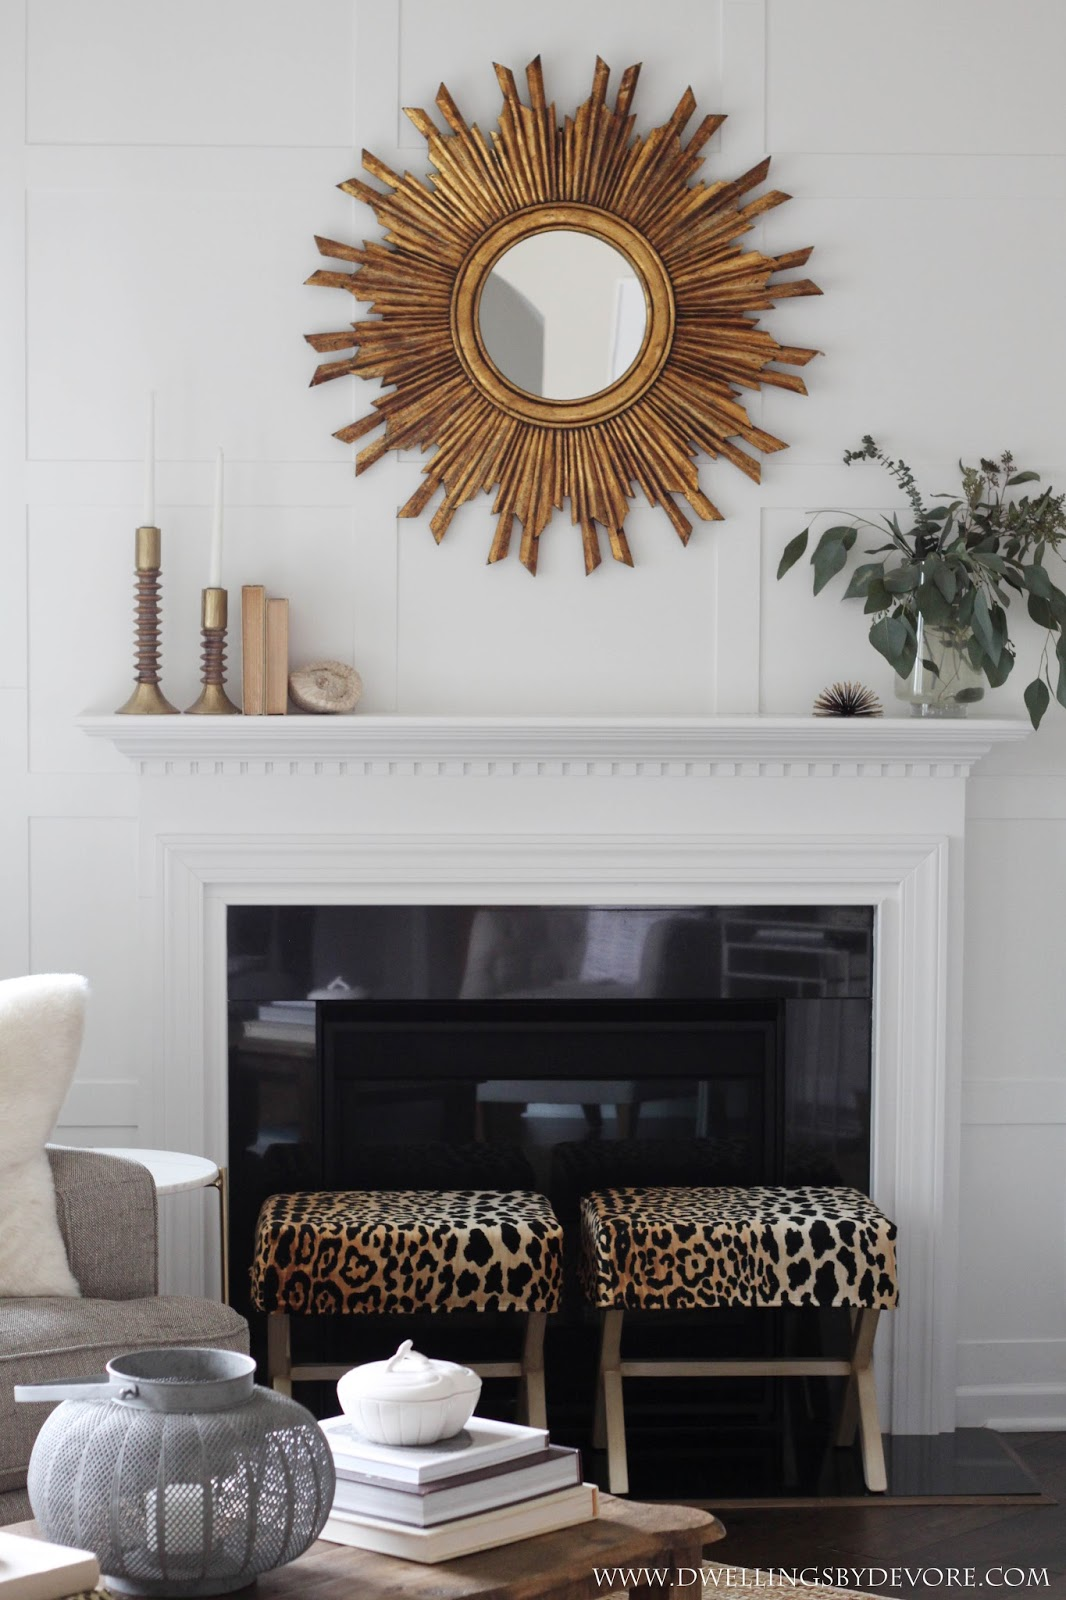 Dwellings By DeVore: Leopard X Benches